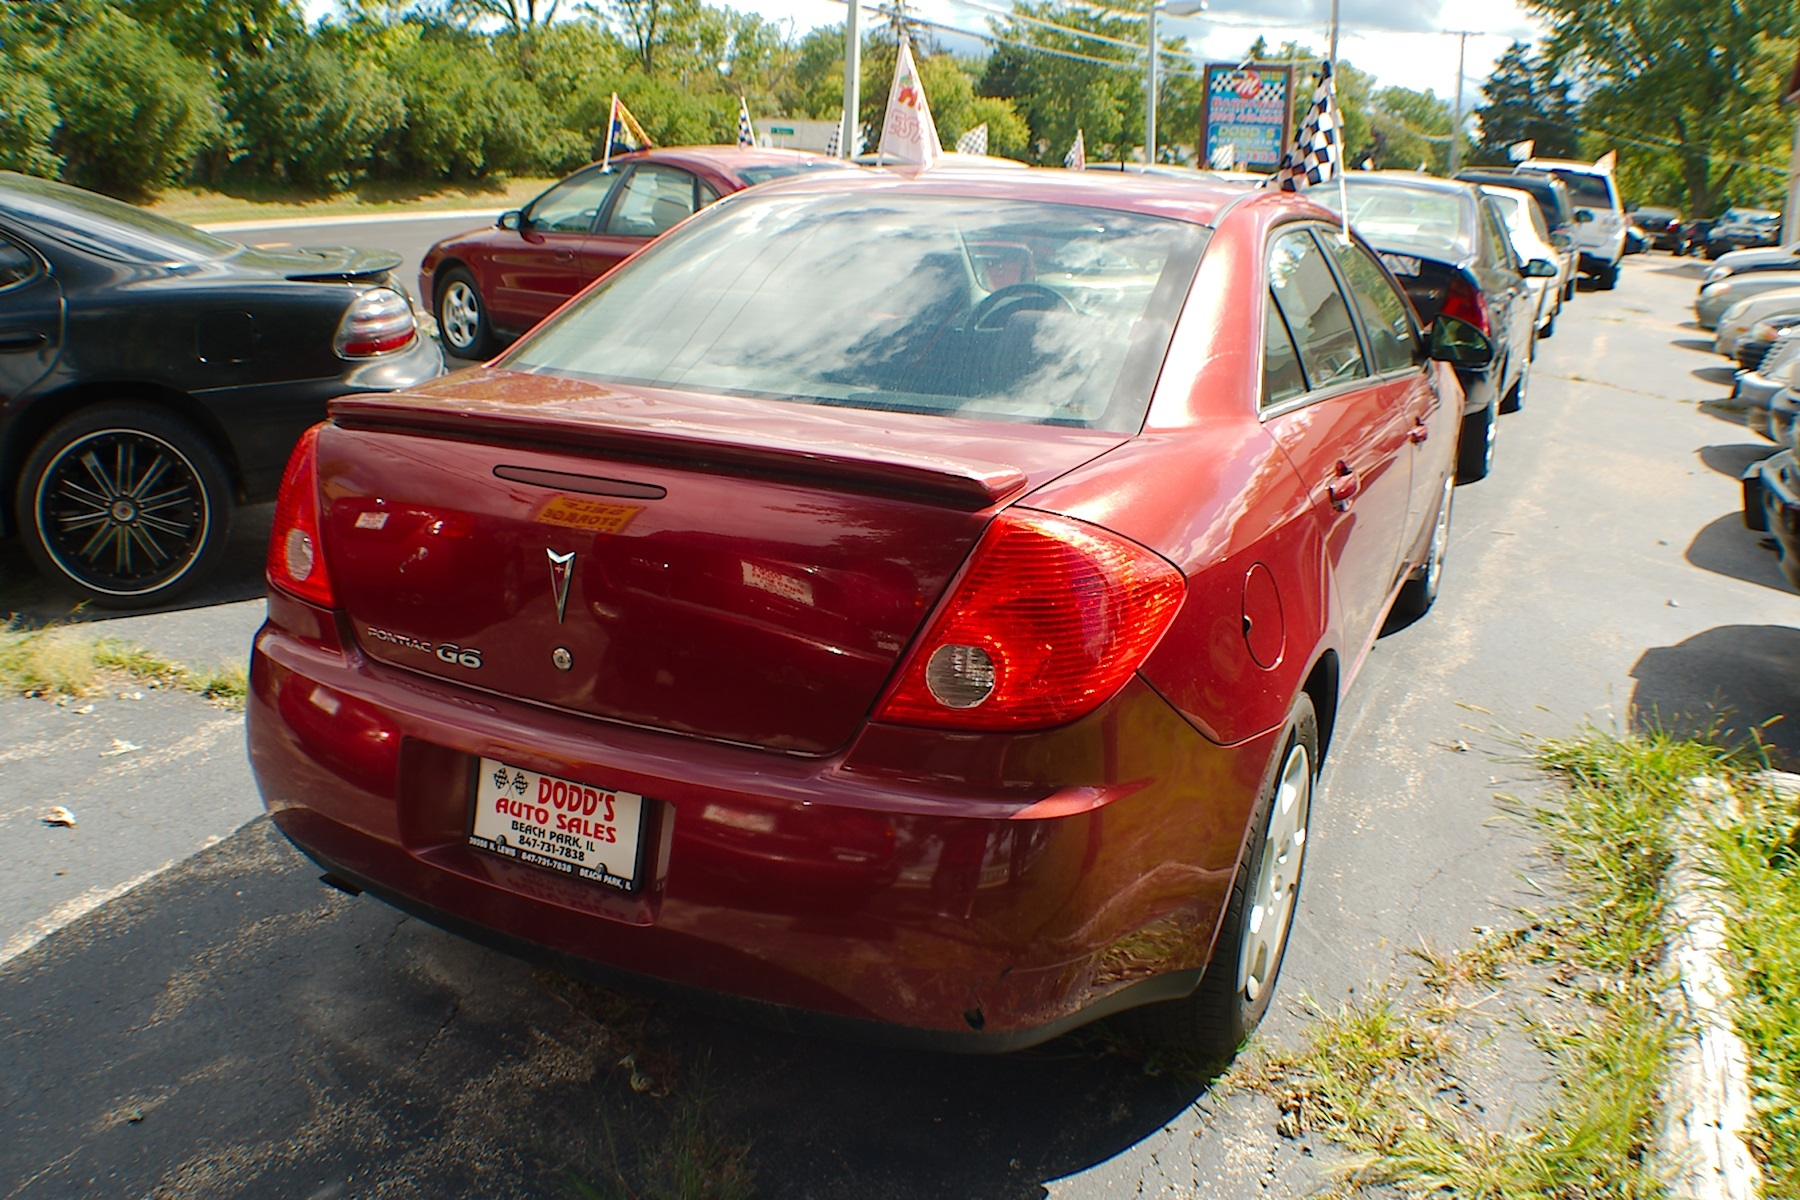 2008 Pontiac G6 Red Sedan Used Car Sale Buffalo Grove Deerfield Fox Lake Antioch